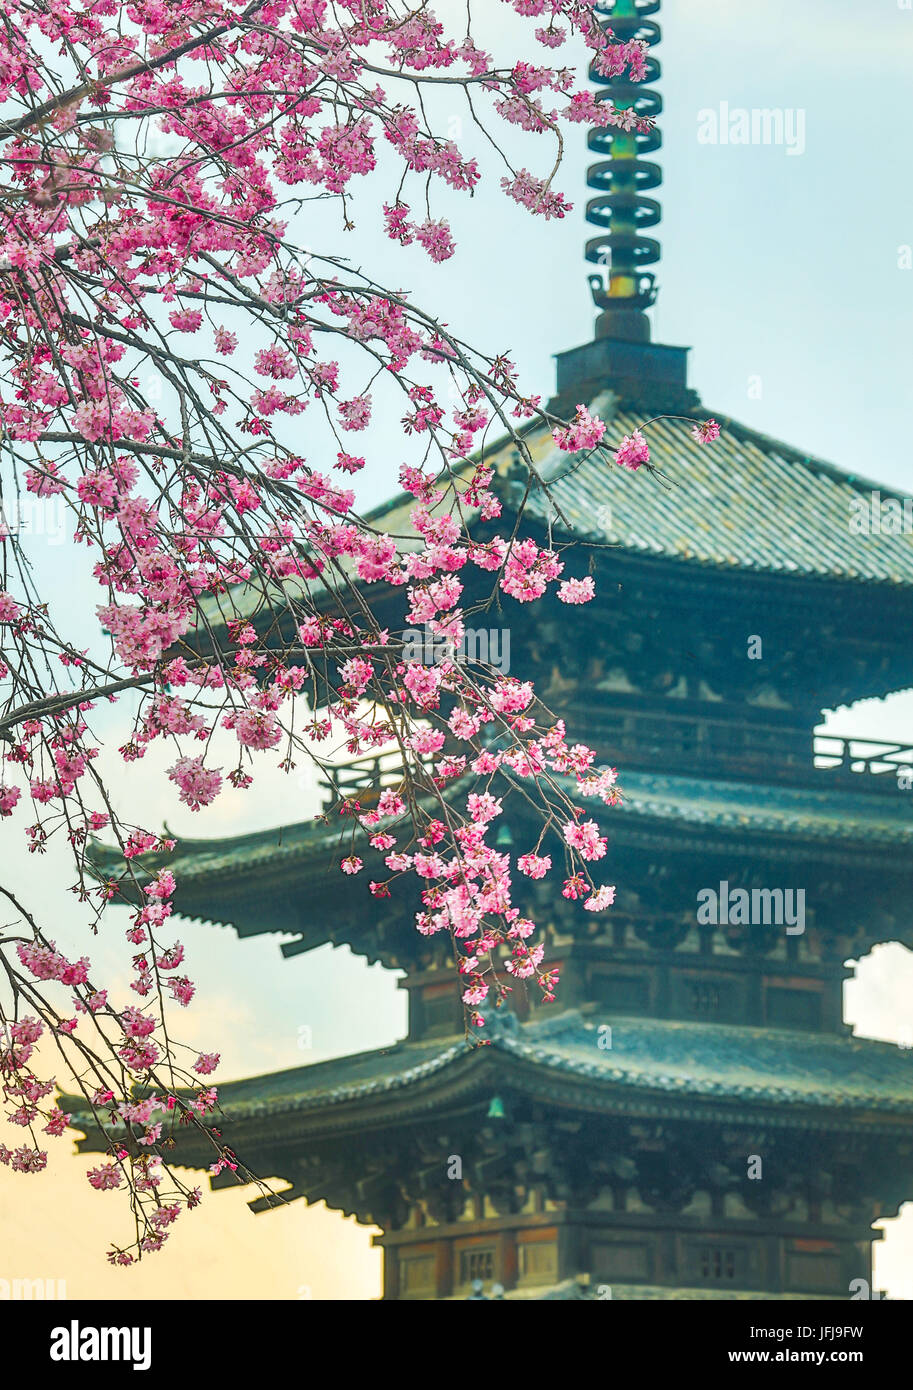 Japan, Kyoto City, Pagoda and blossoms - Stock Image